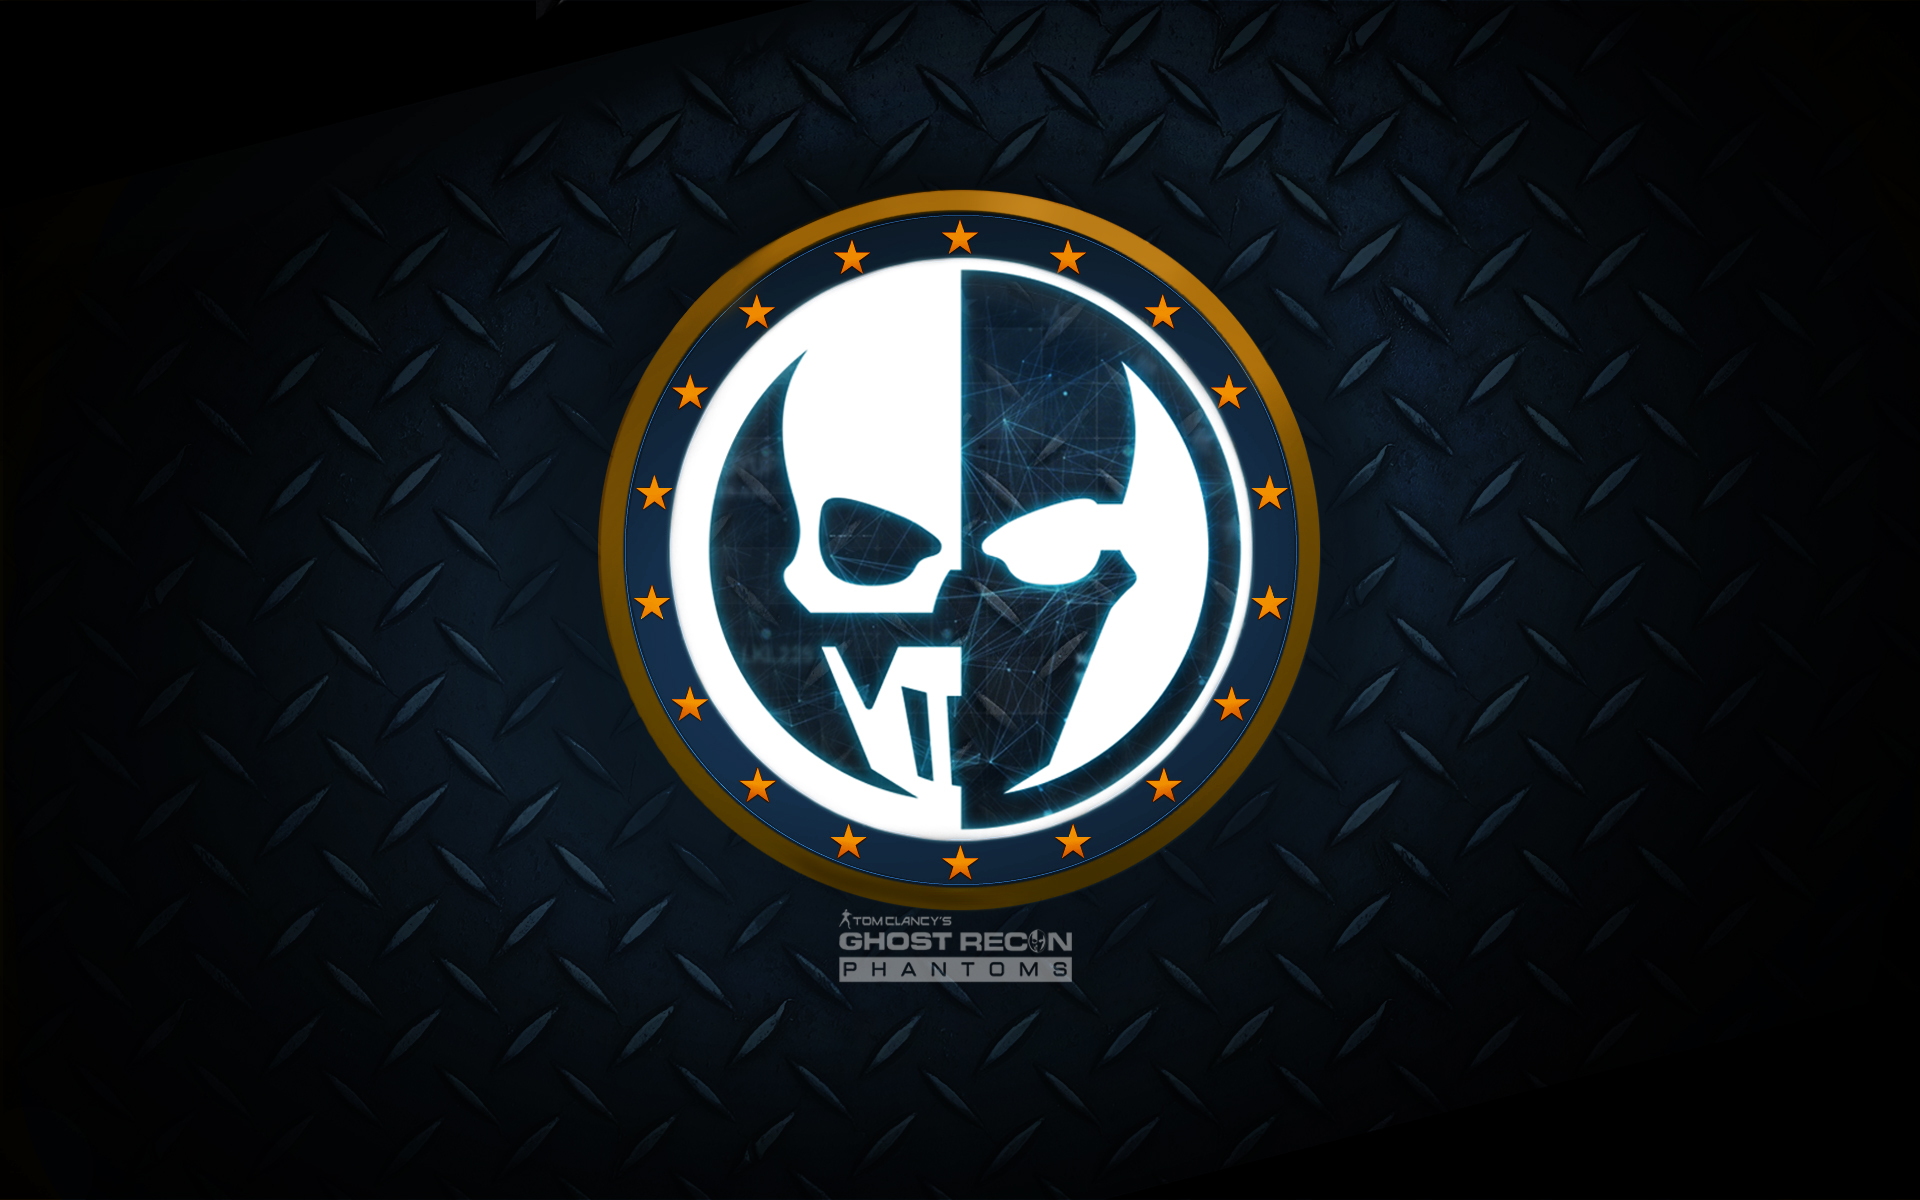 Tom Clancys Ghost Recon Phantoms wallpaper by spidermonkey23 on 1920x1200